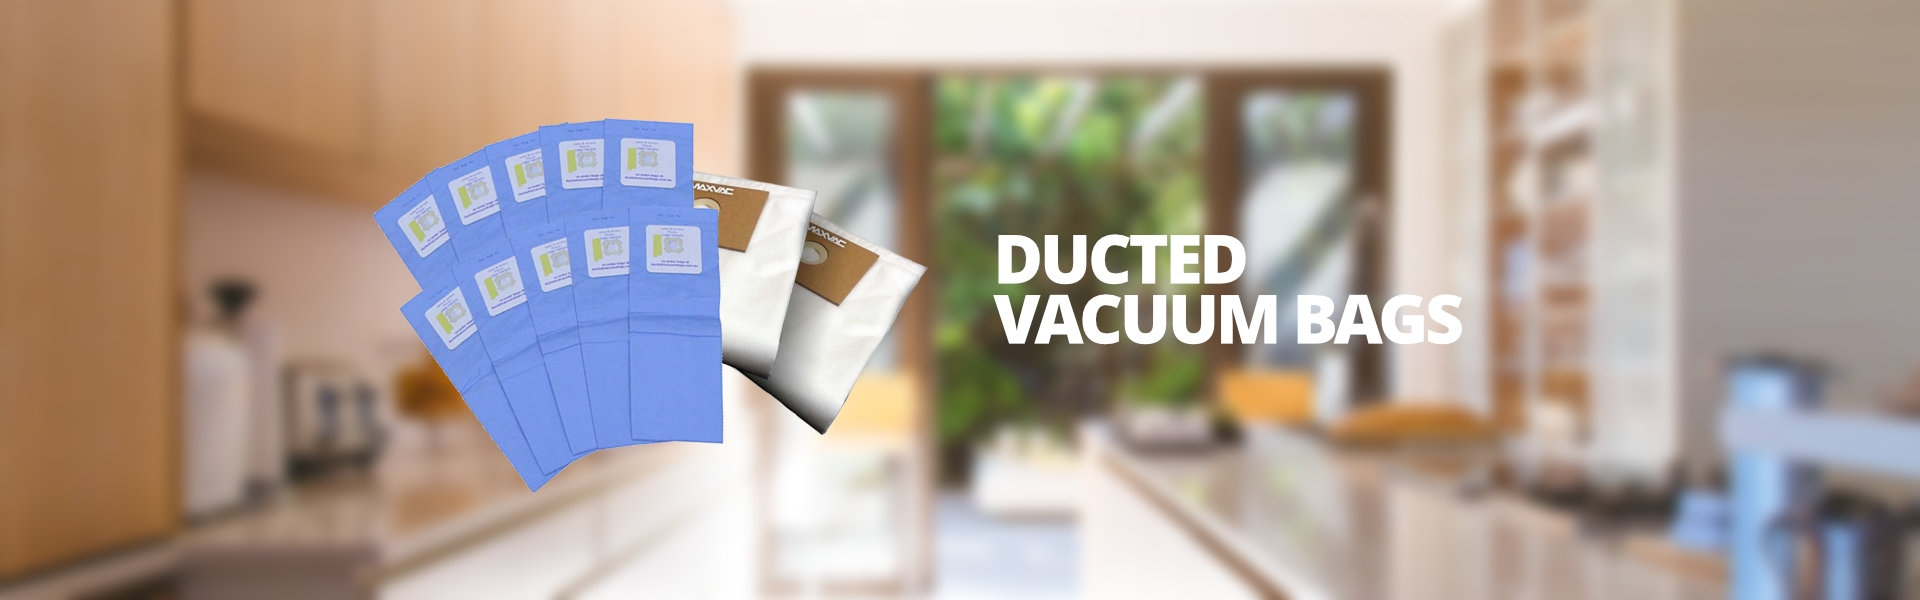 Ducted Vacuum Bags Melbourne